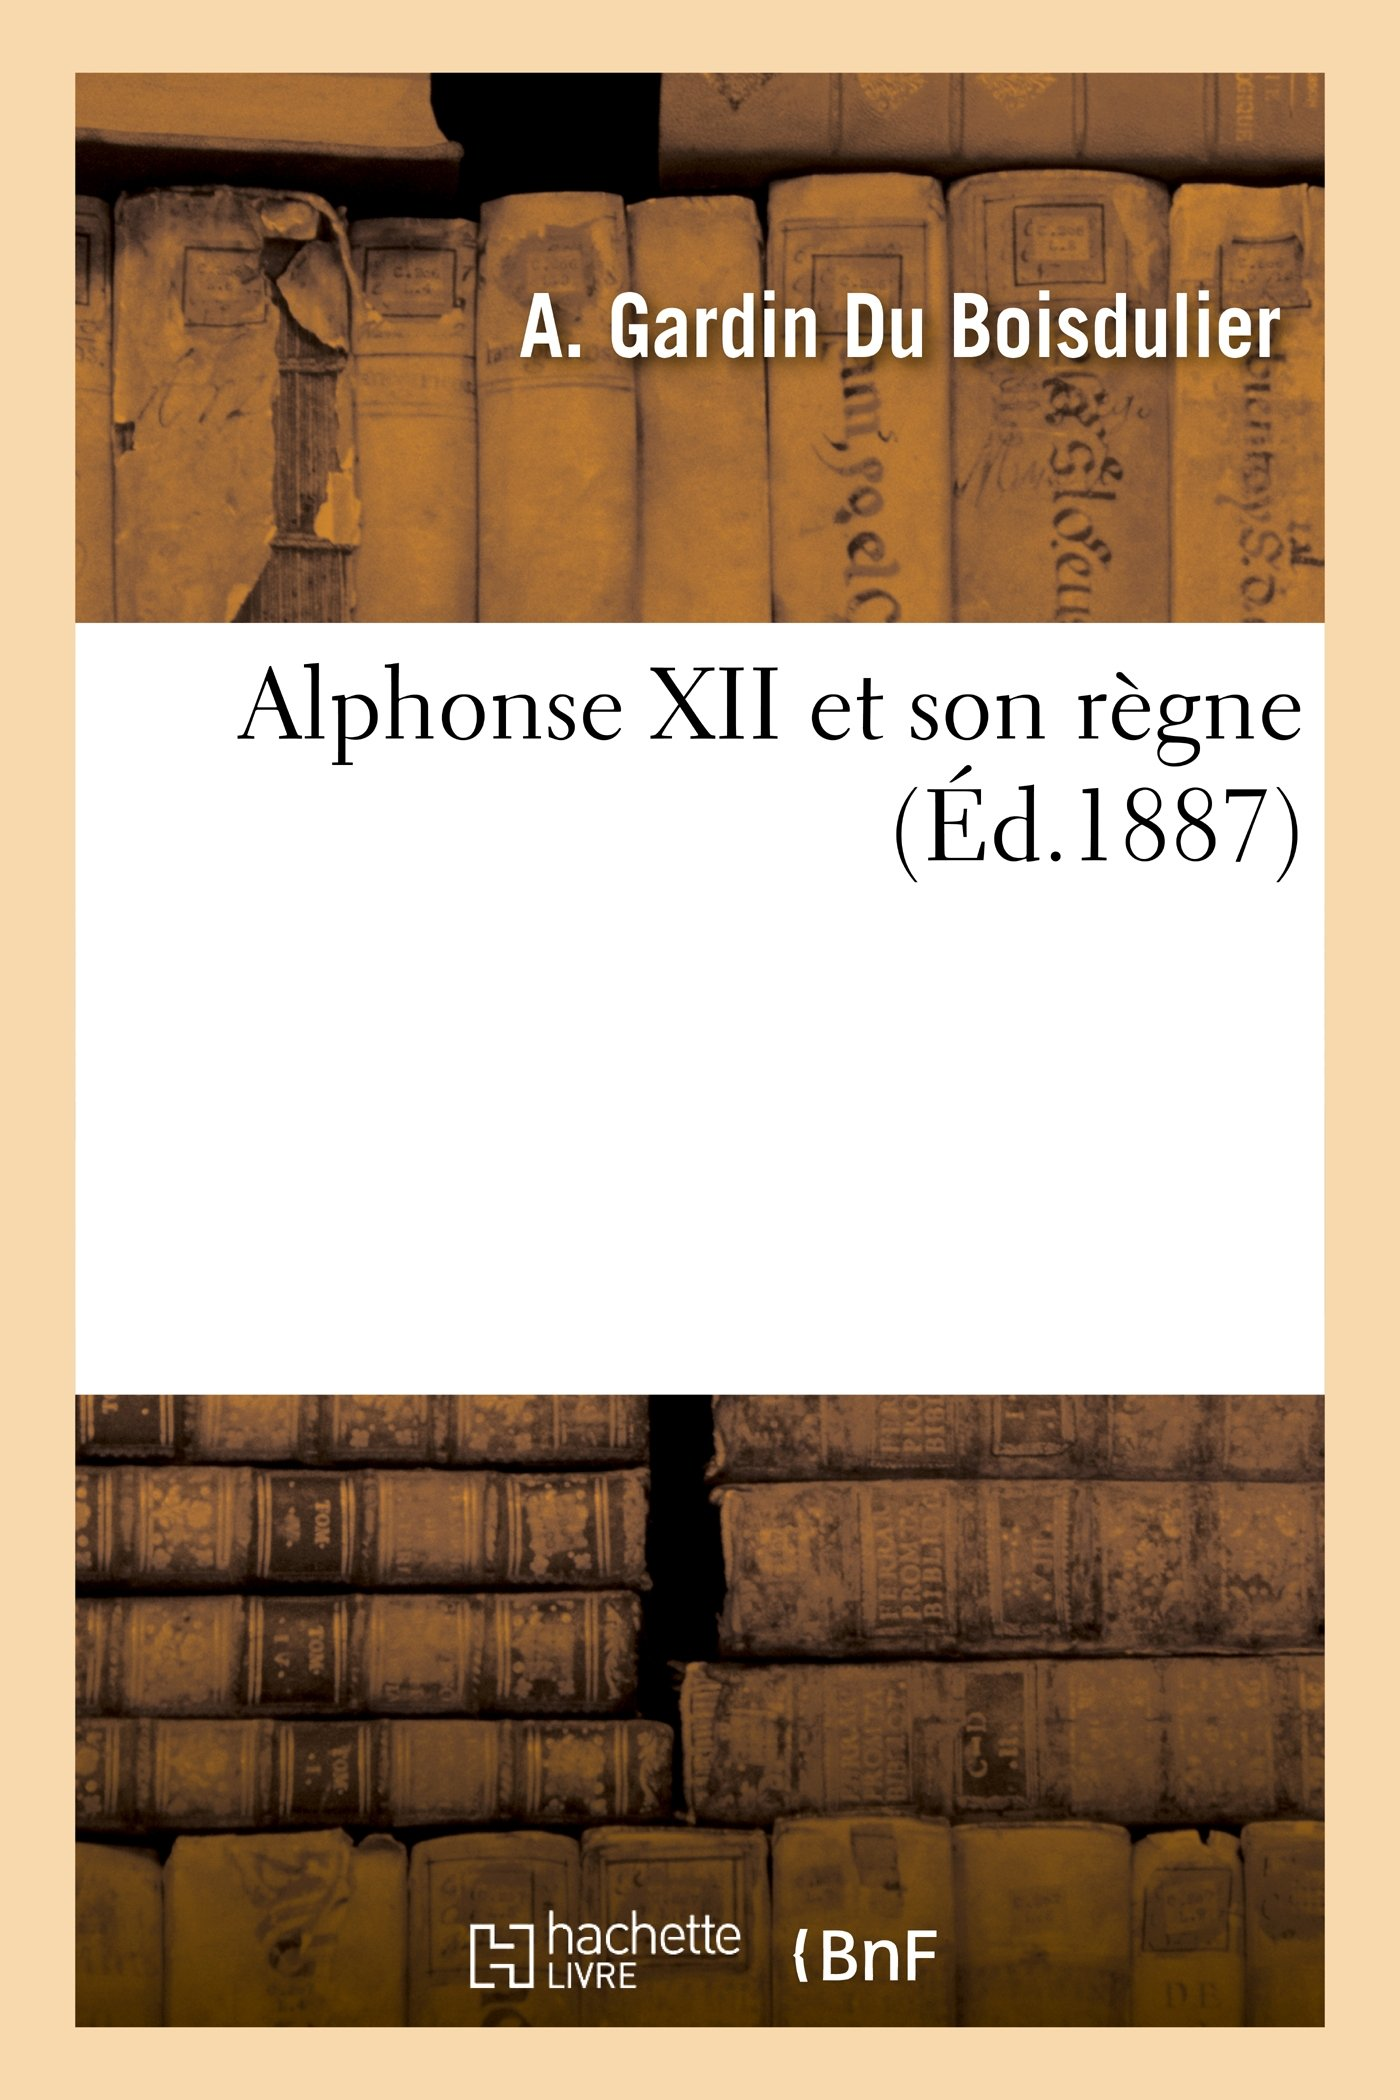 Alphonse XII et son règne (Histoire) (French Edition) ebook